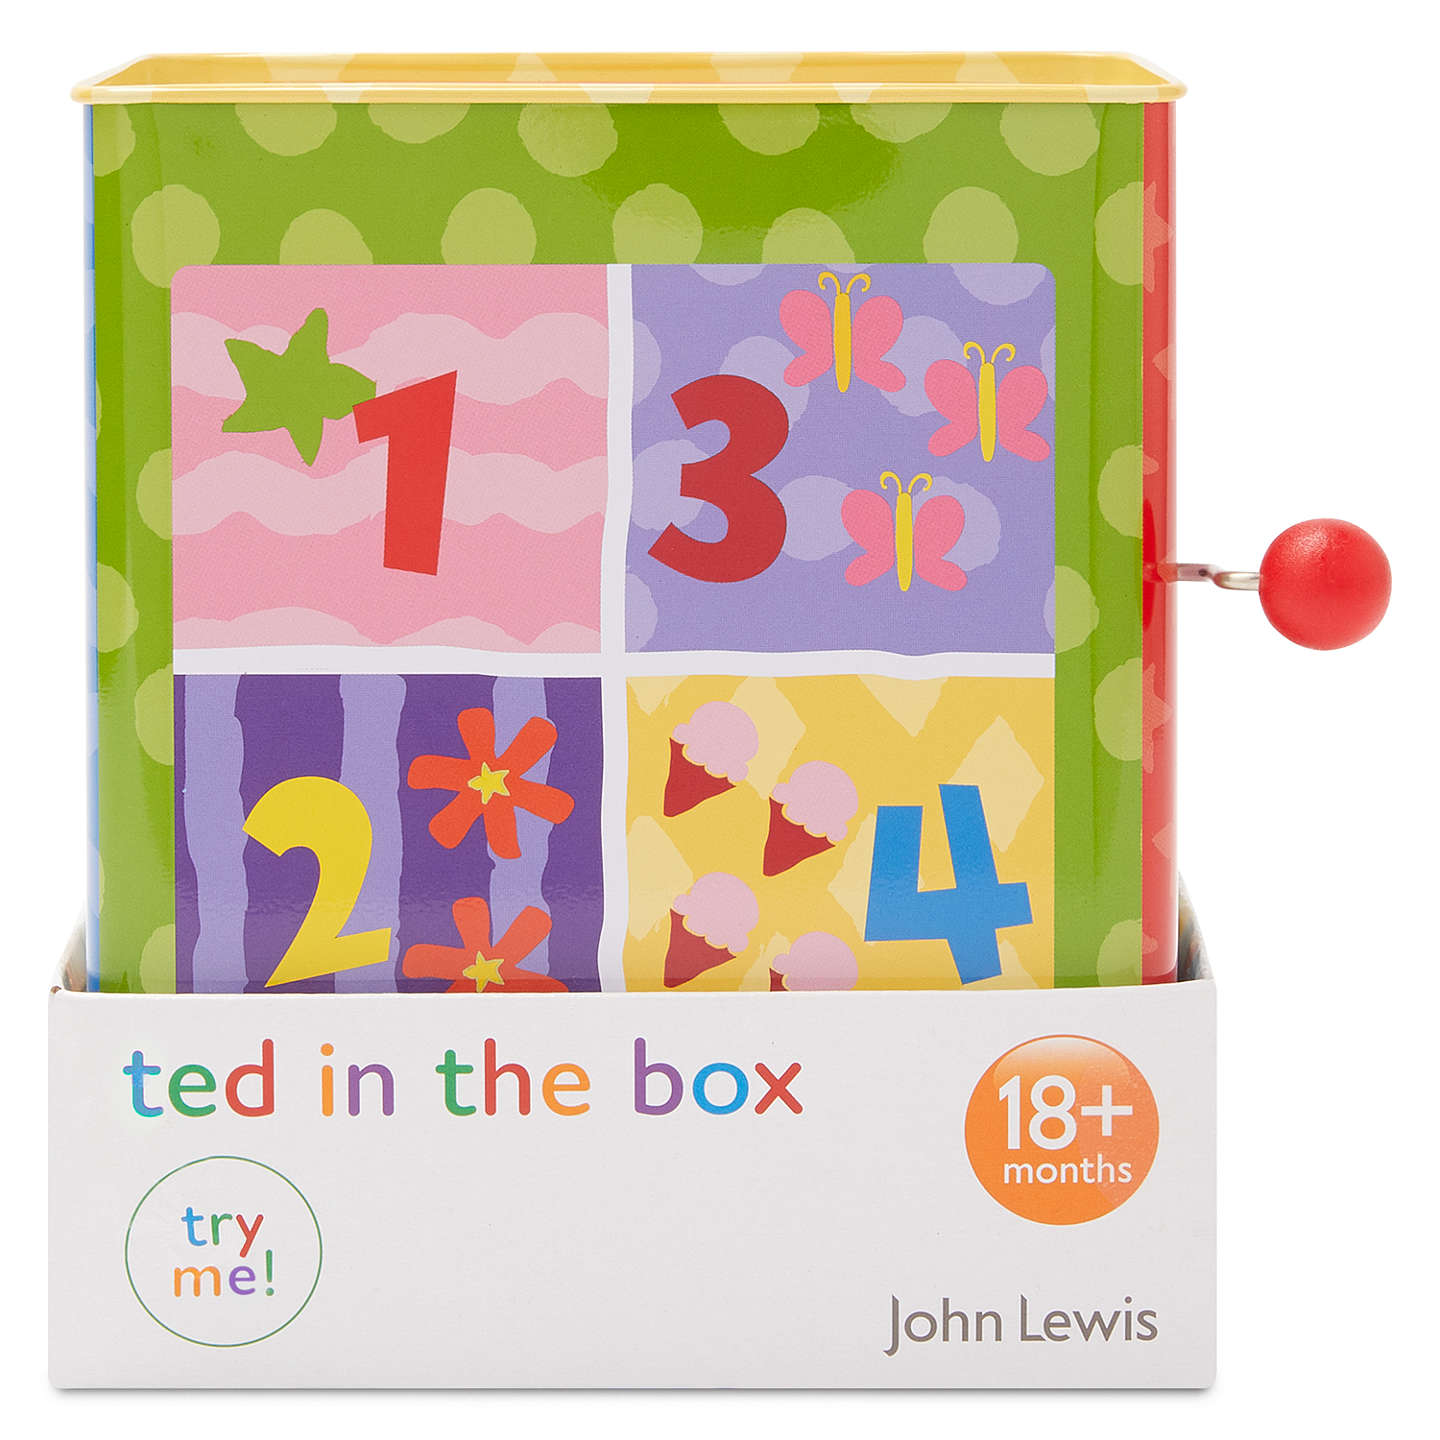 BuyJohn Lewis Teddy Jack In The Box Online at johnlewis.com